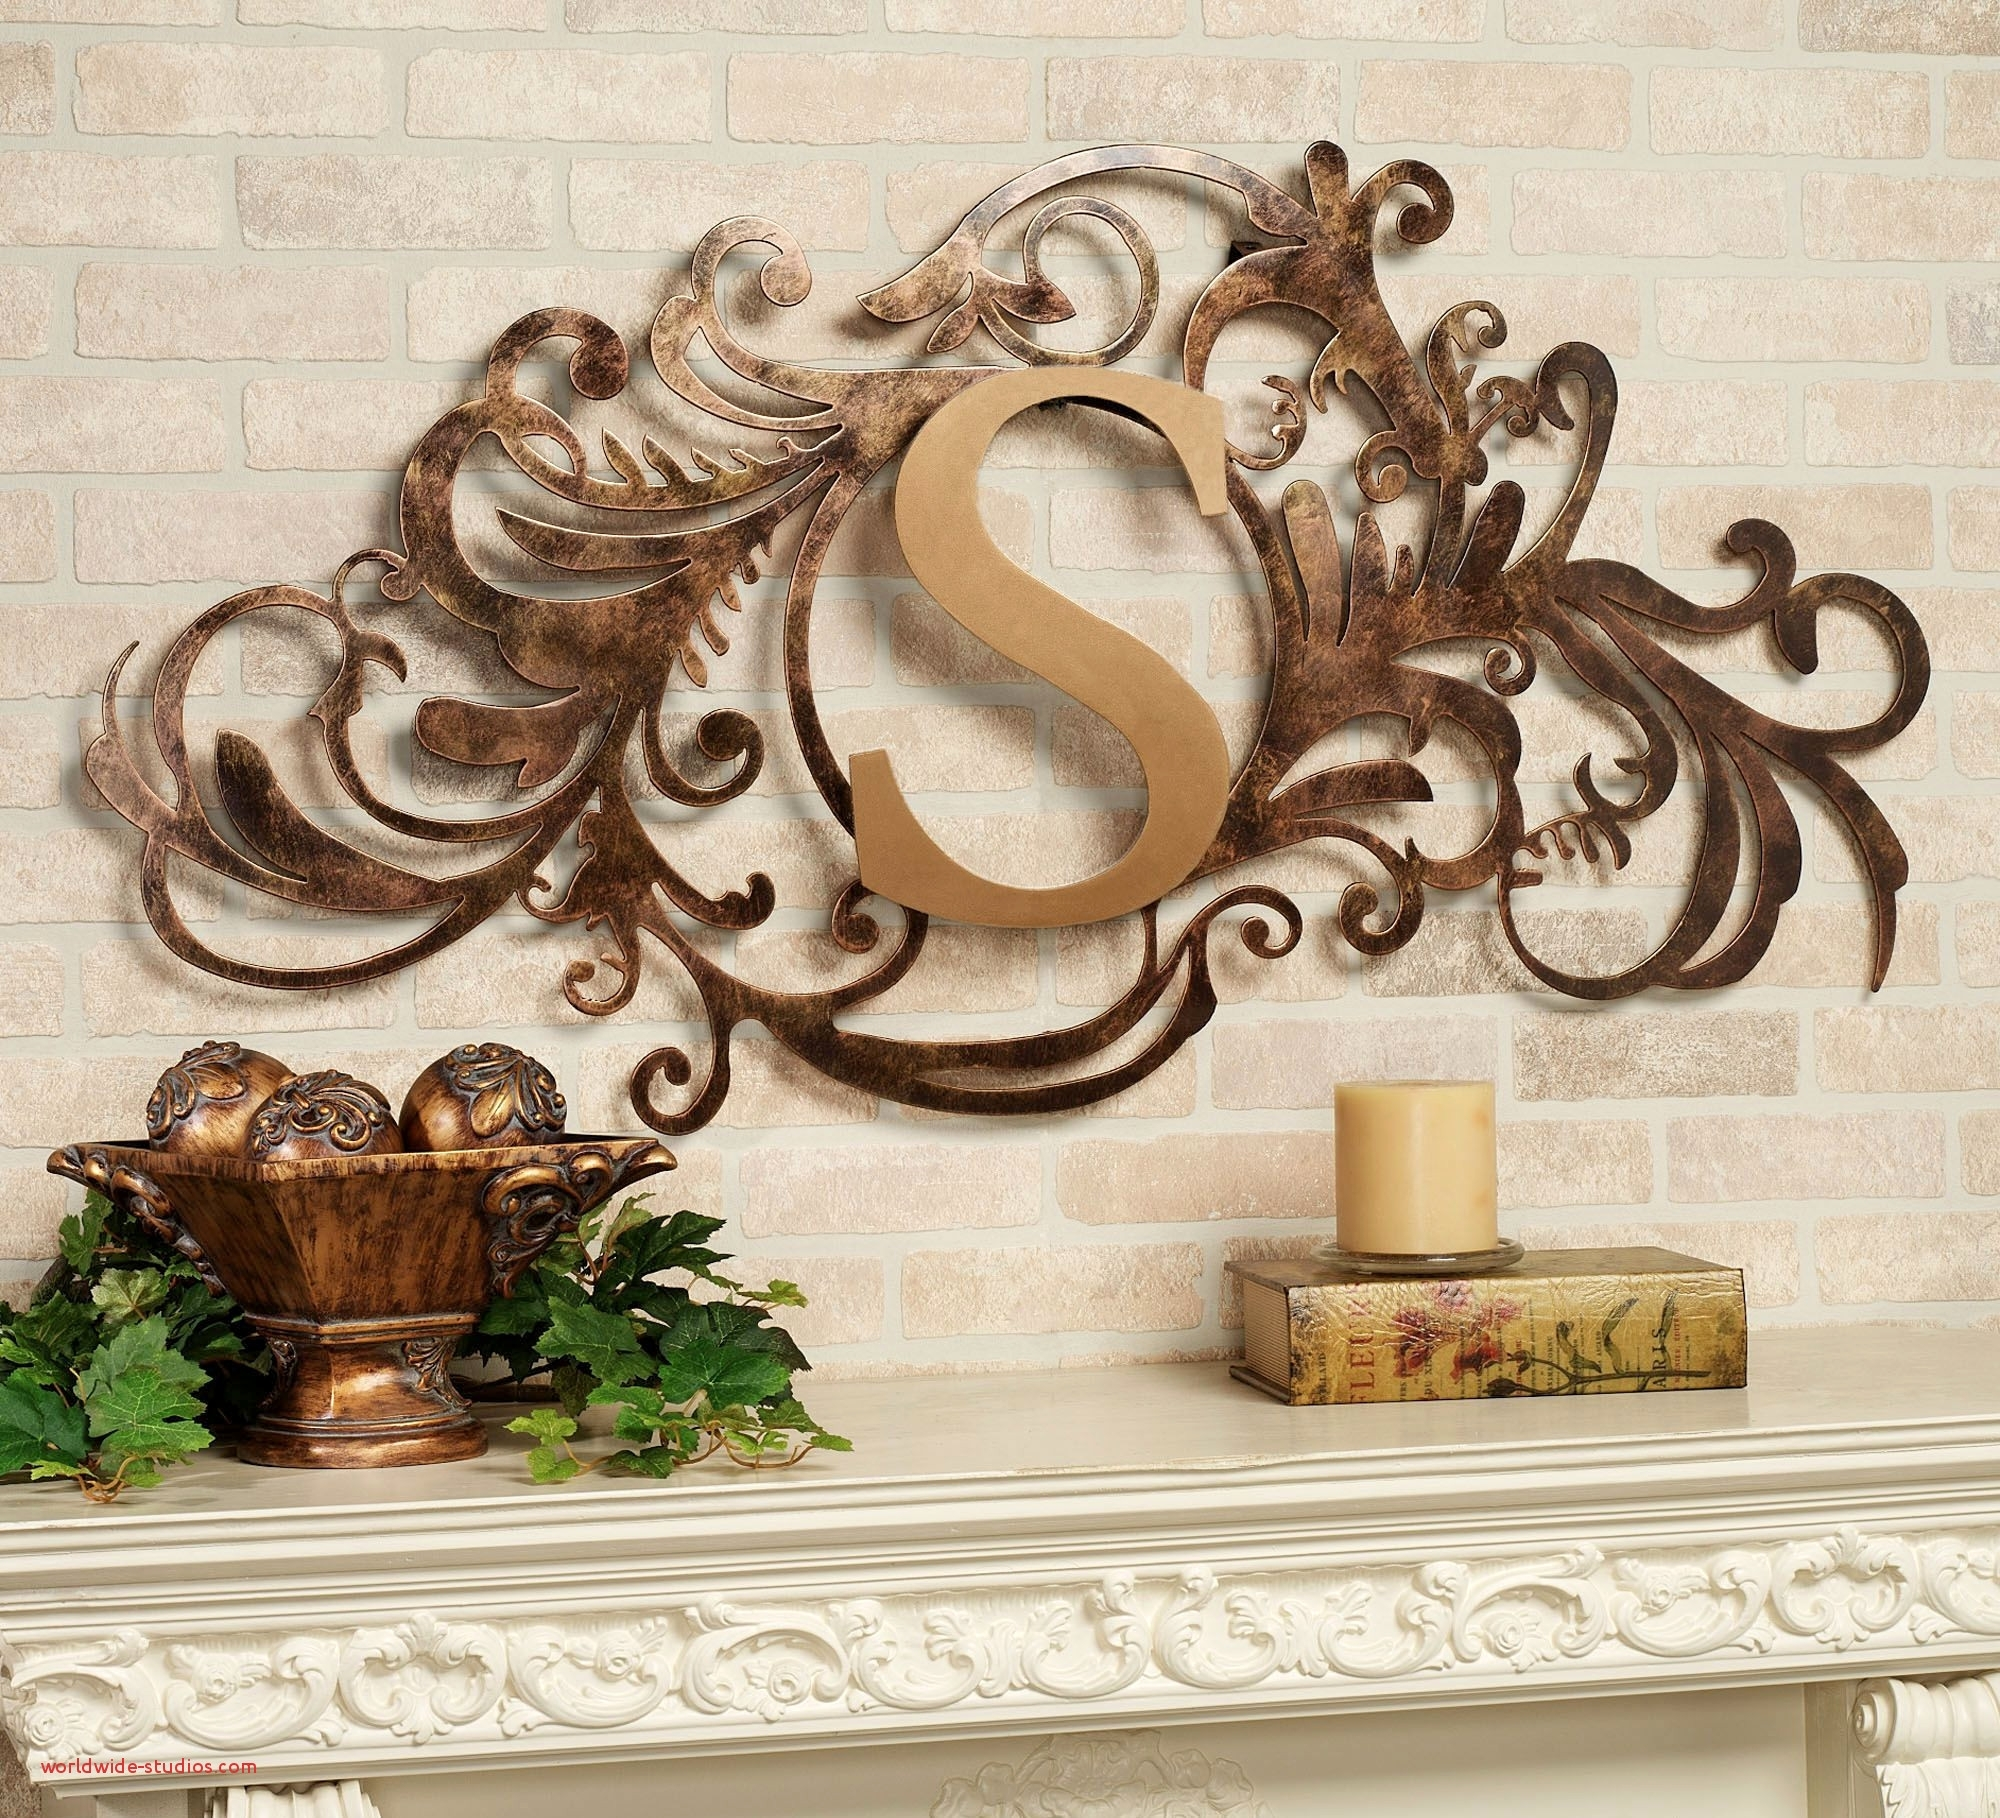 Top Result Diy Monogram Wall Decor Fresh Sightly Nursery Decor Intended For Recent Monogram Wall Art (View 12 of 20)